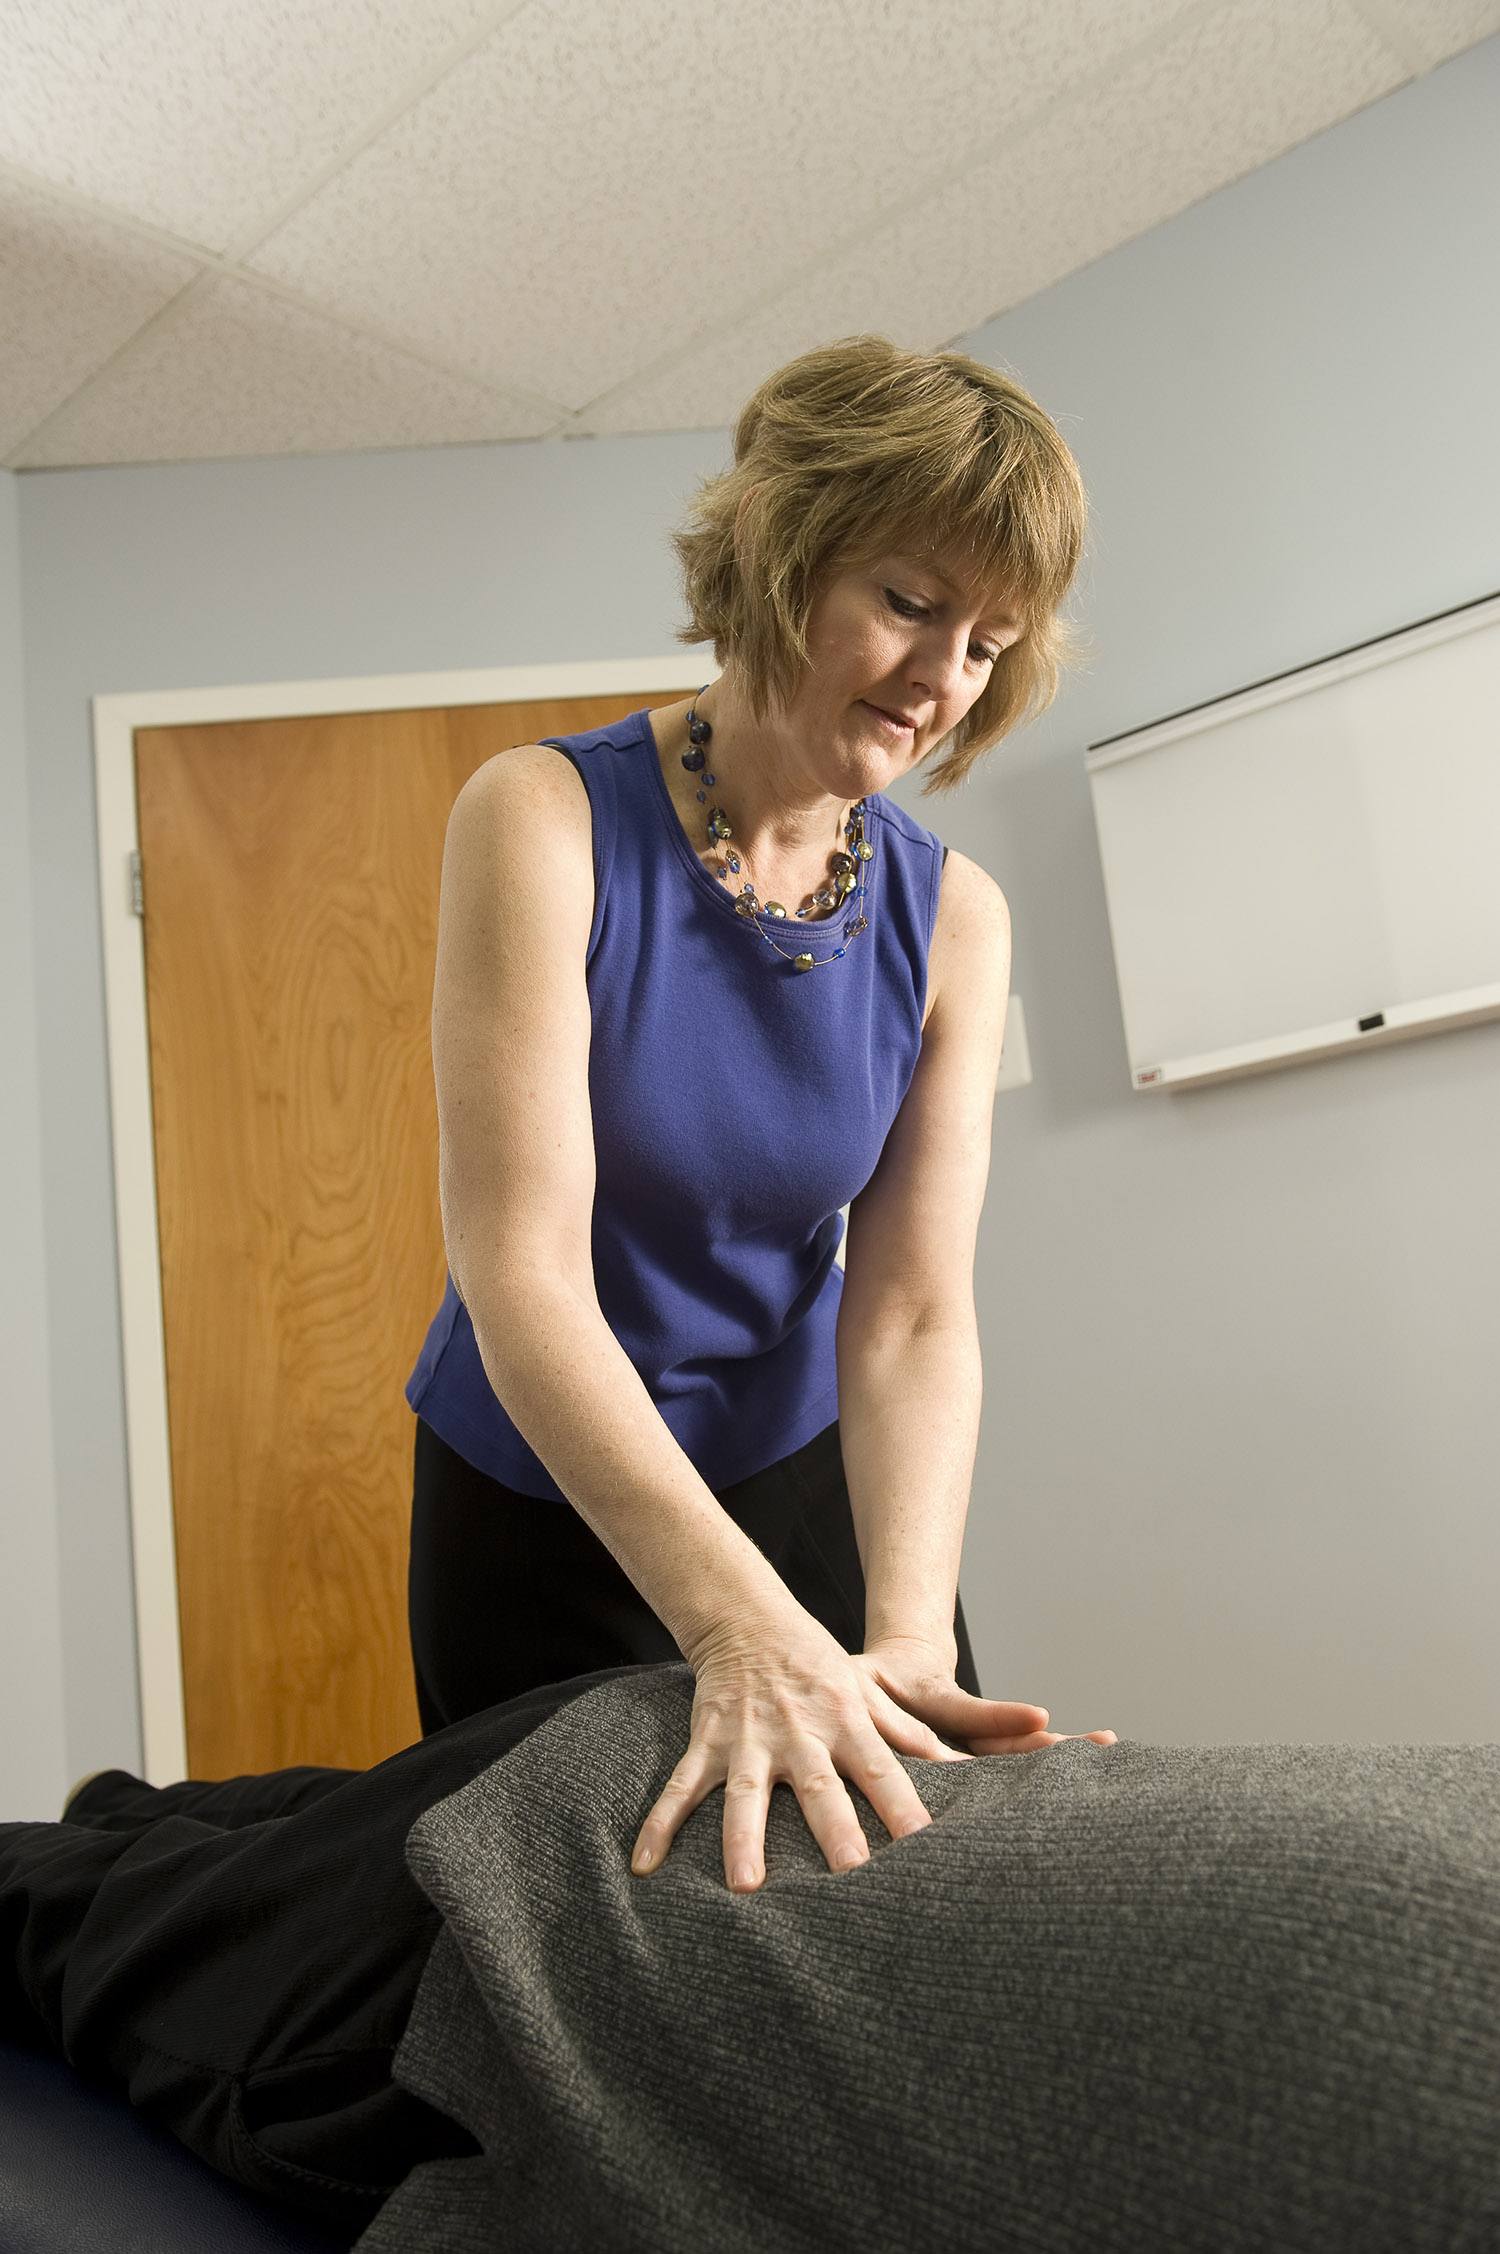 A chiropractor works on a patient.